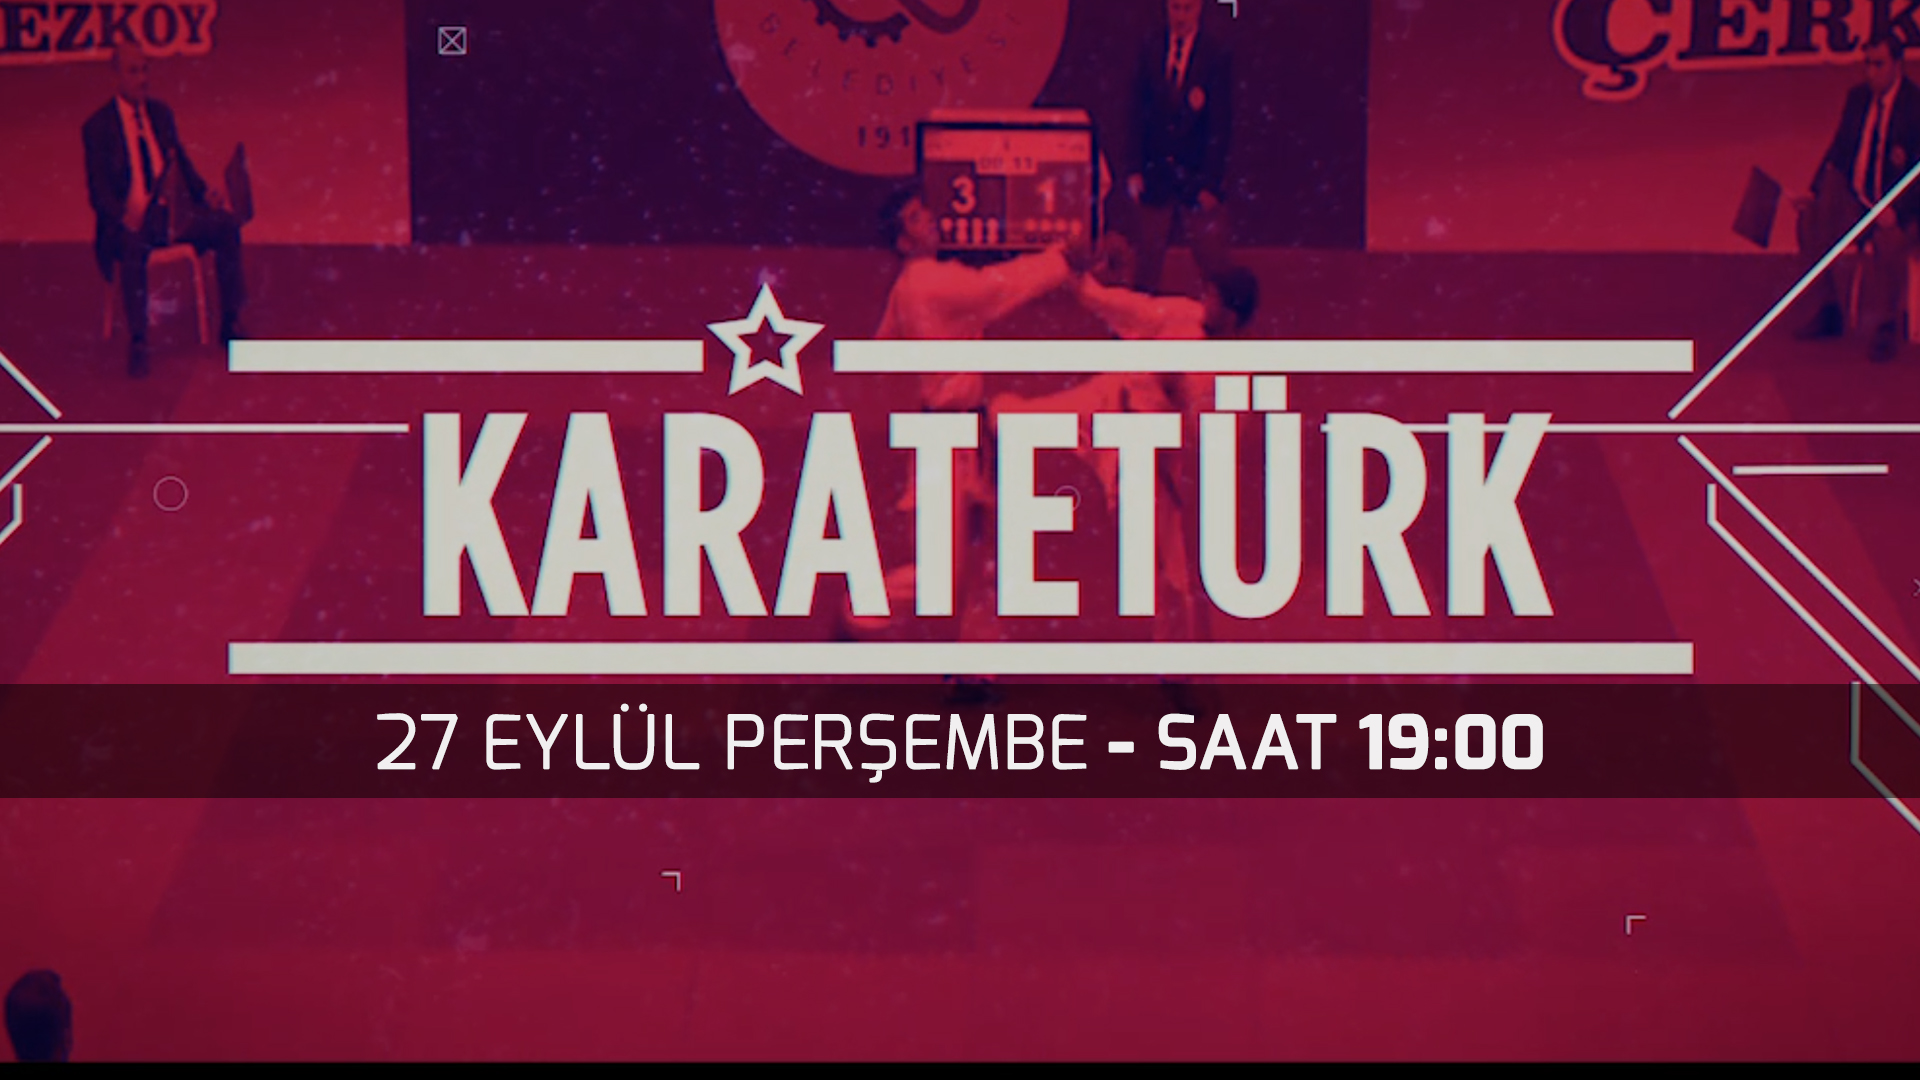 KARATE TÜRK TV PROGRAMI SPORTS TV'DE BAŞLIYOR